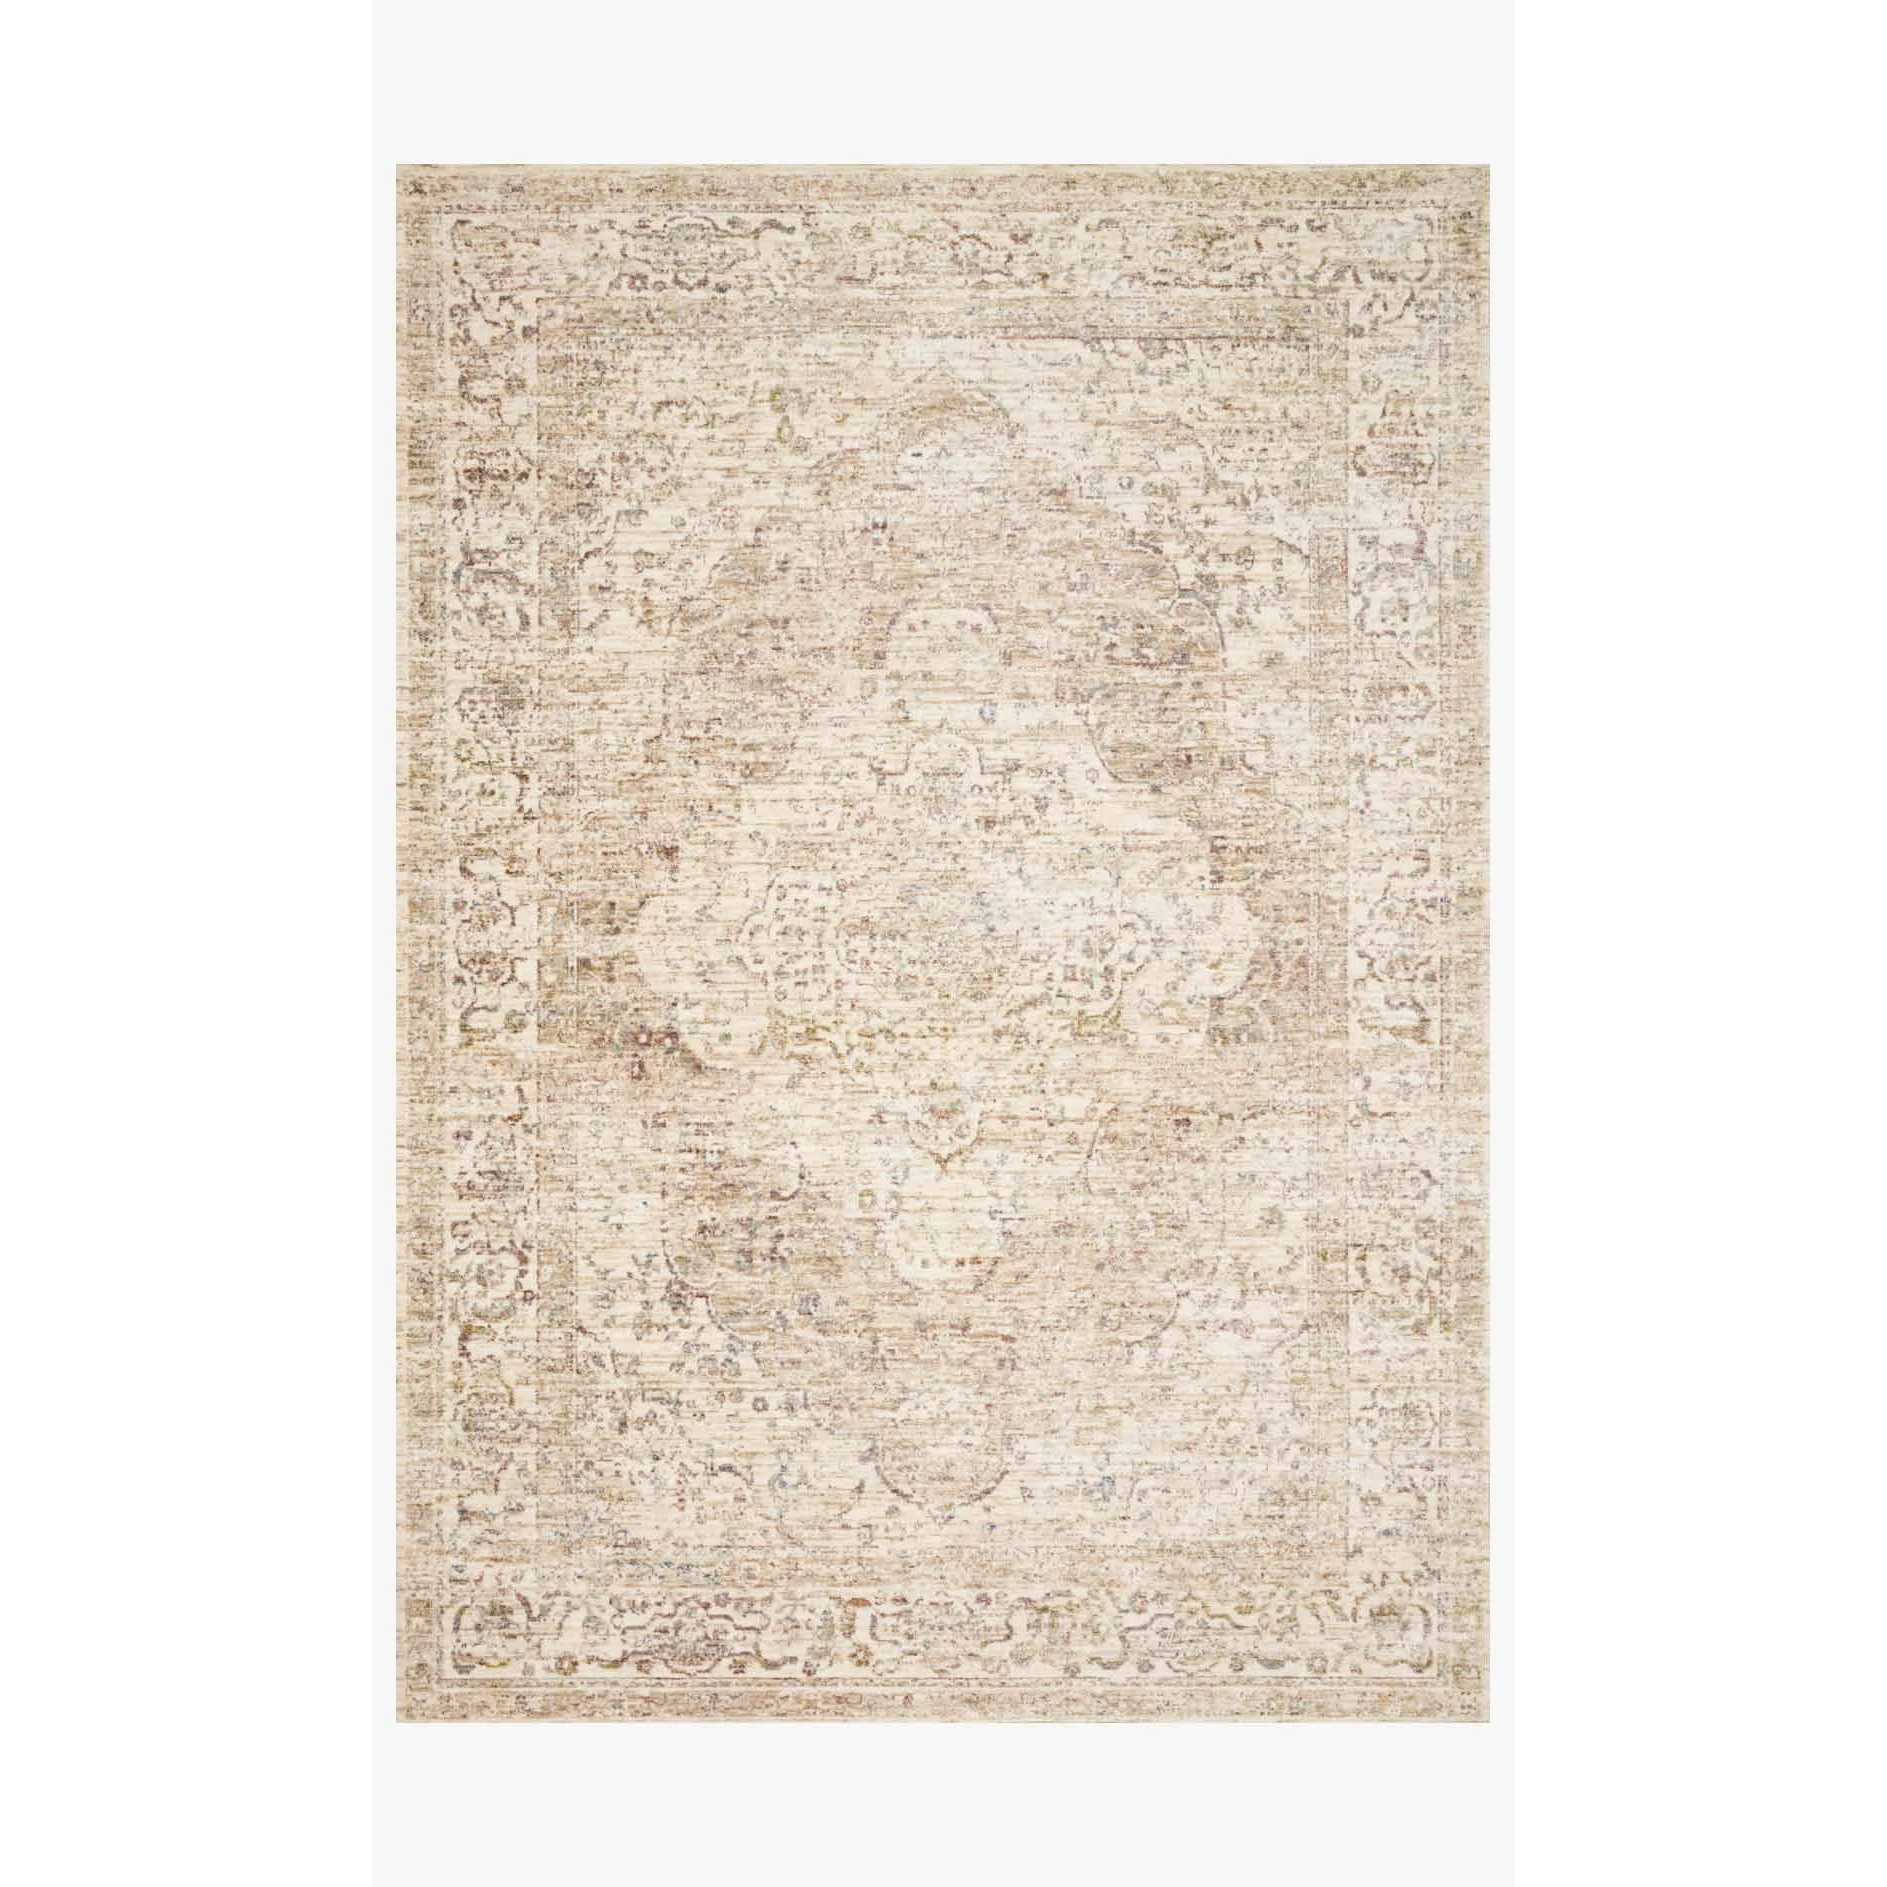 Revere Rugs by Loloi - REV-04 Ivory / Berry-Loloi Rugs-Blue Hand Home